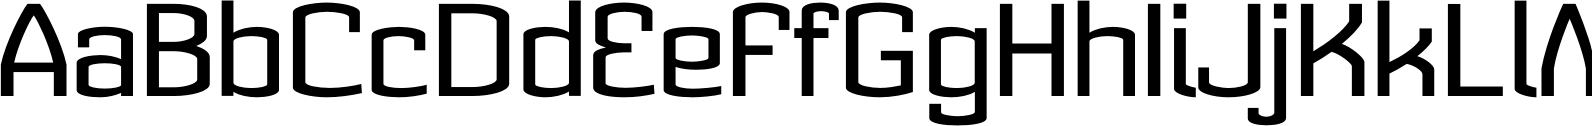 Cohort Regular Font